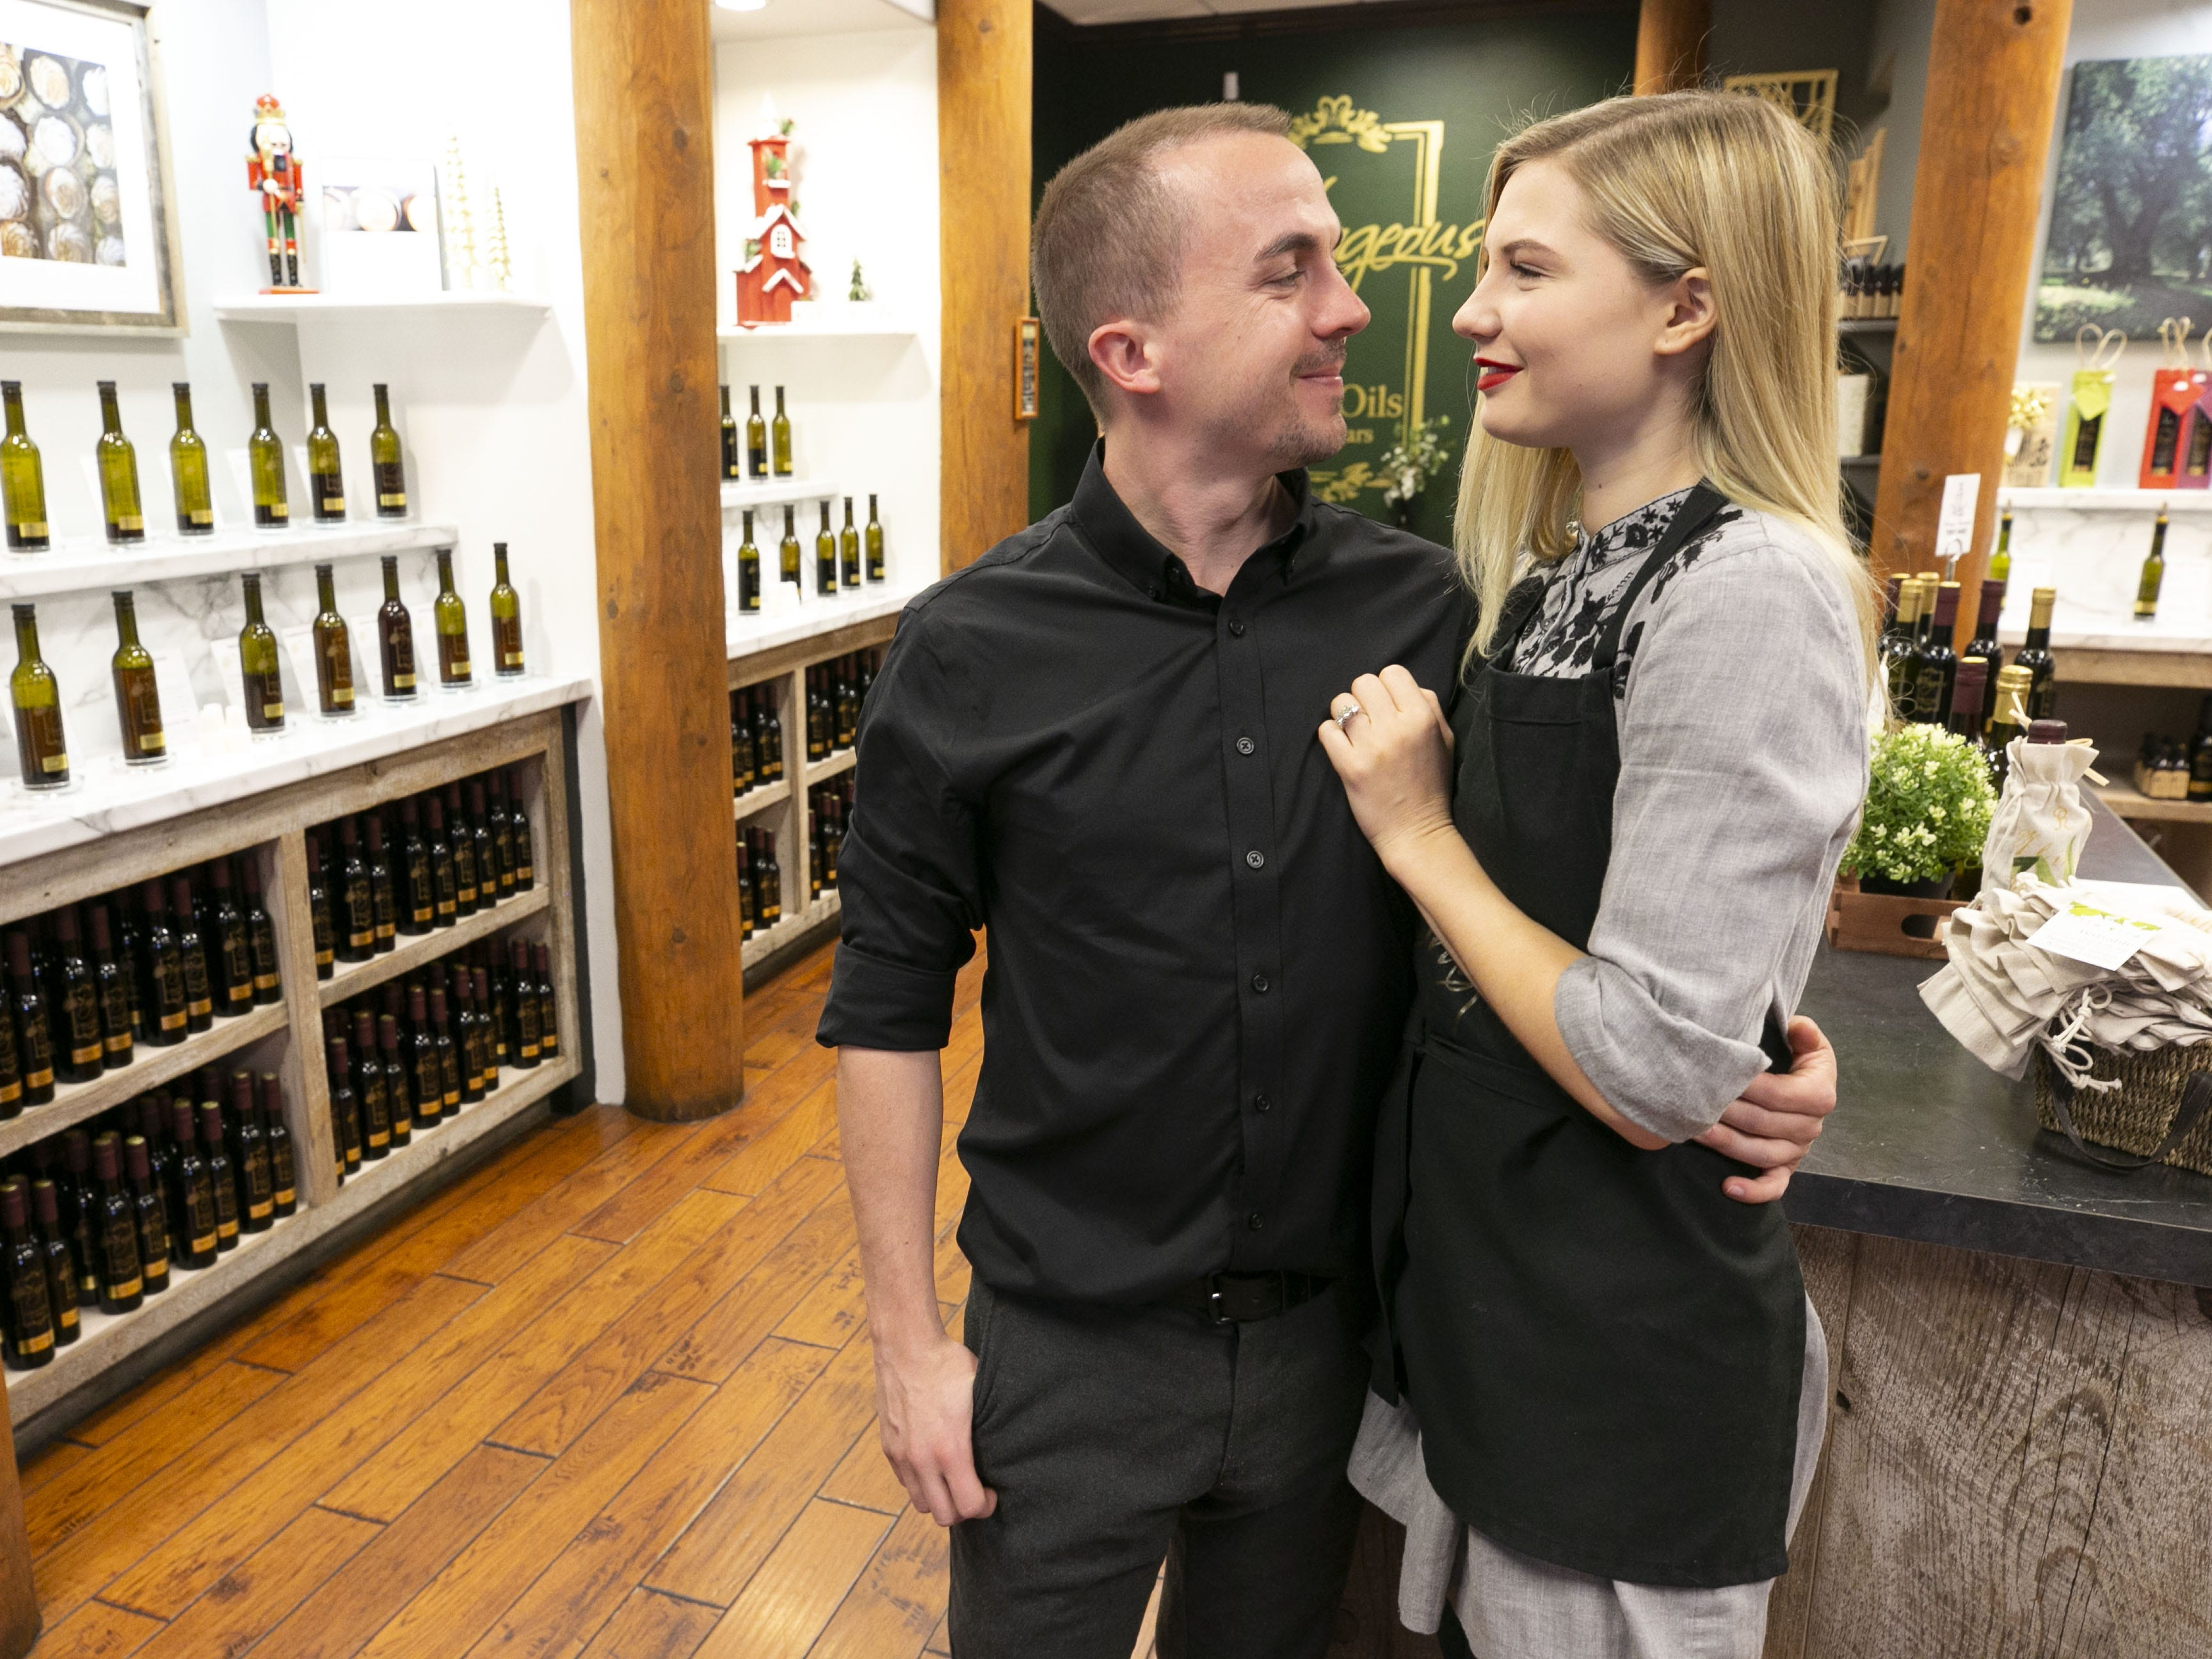 Child actor, Frankie Muniz and his fiance Paige Price own and run Outrageous Olive Oils & Vinegars in Old Town Scottsdale on Tuesday, Dec. 11, 2018.